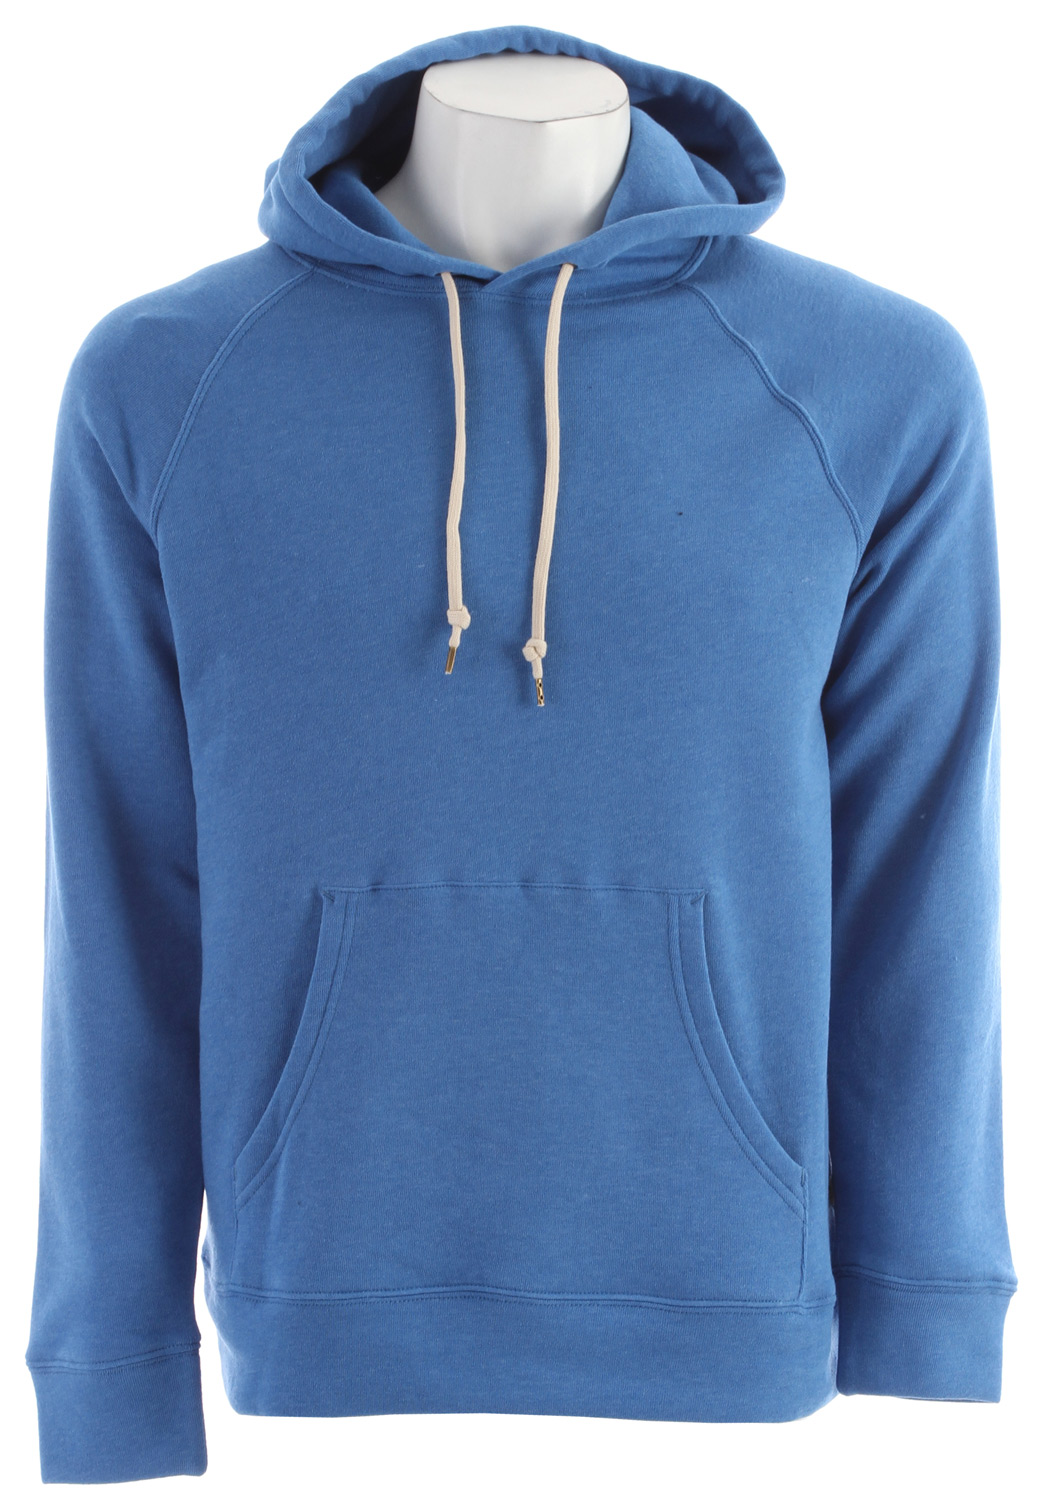 New Obey Lofty Creature Comforts Pullover Hoodie! This stylish hoodie is blend of cotton and polyester to ensure that you are 100% comfortable. The slim fit is great for those who dislike having too much extra fabric or steer away from baggier clothing. The Lofty Creature Comforts Pullover Hoodie comes with a large connected kangaroo pocket in the front, perfect for keeping your hands extra toasty when you need it or holding onto important items that you don't want to lose.Key Features of the Obey Lofty Creature Comforts Pullover Hoodie:  Slim fit pull over hoodie fleece with raglan sleeves  Features a soft fabrication, large pouch pocket at bottom and cream drawcords at hood  Includes OBEY specialty labels at interior neck and side seams  60% Cotton / 40% Polyester - $32.95